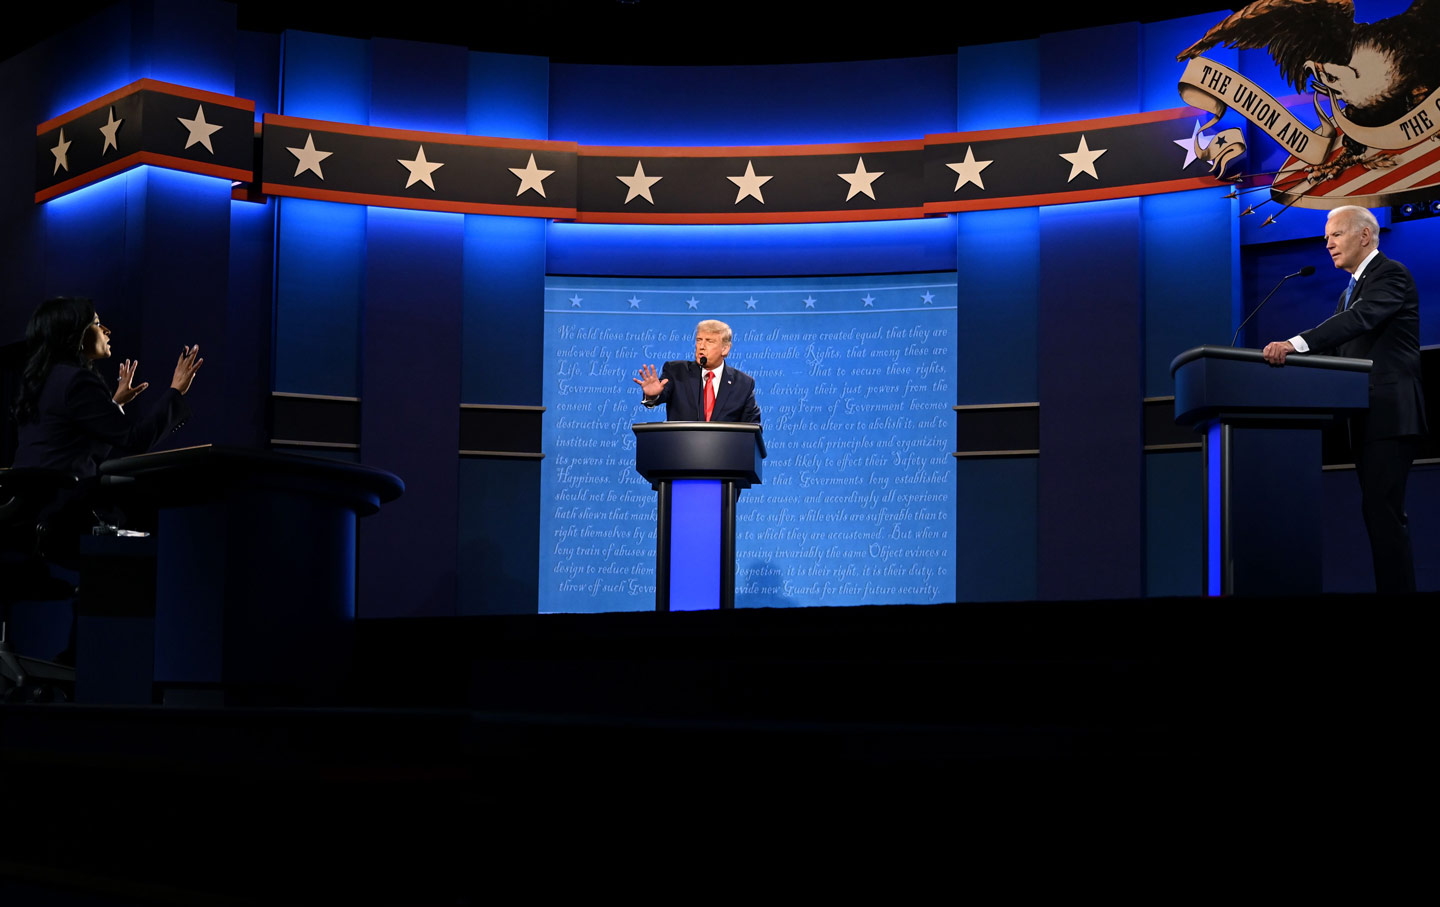 trump-biden-2020-election-debate-gty-img